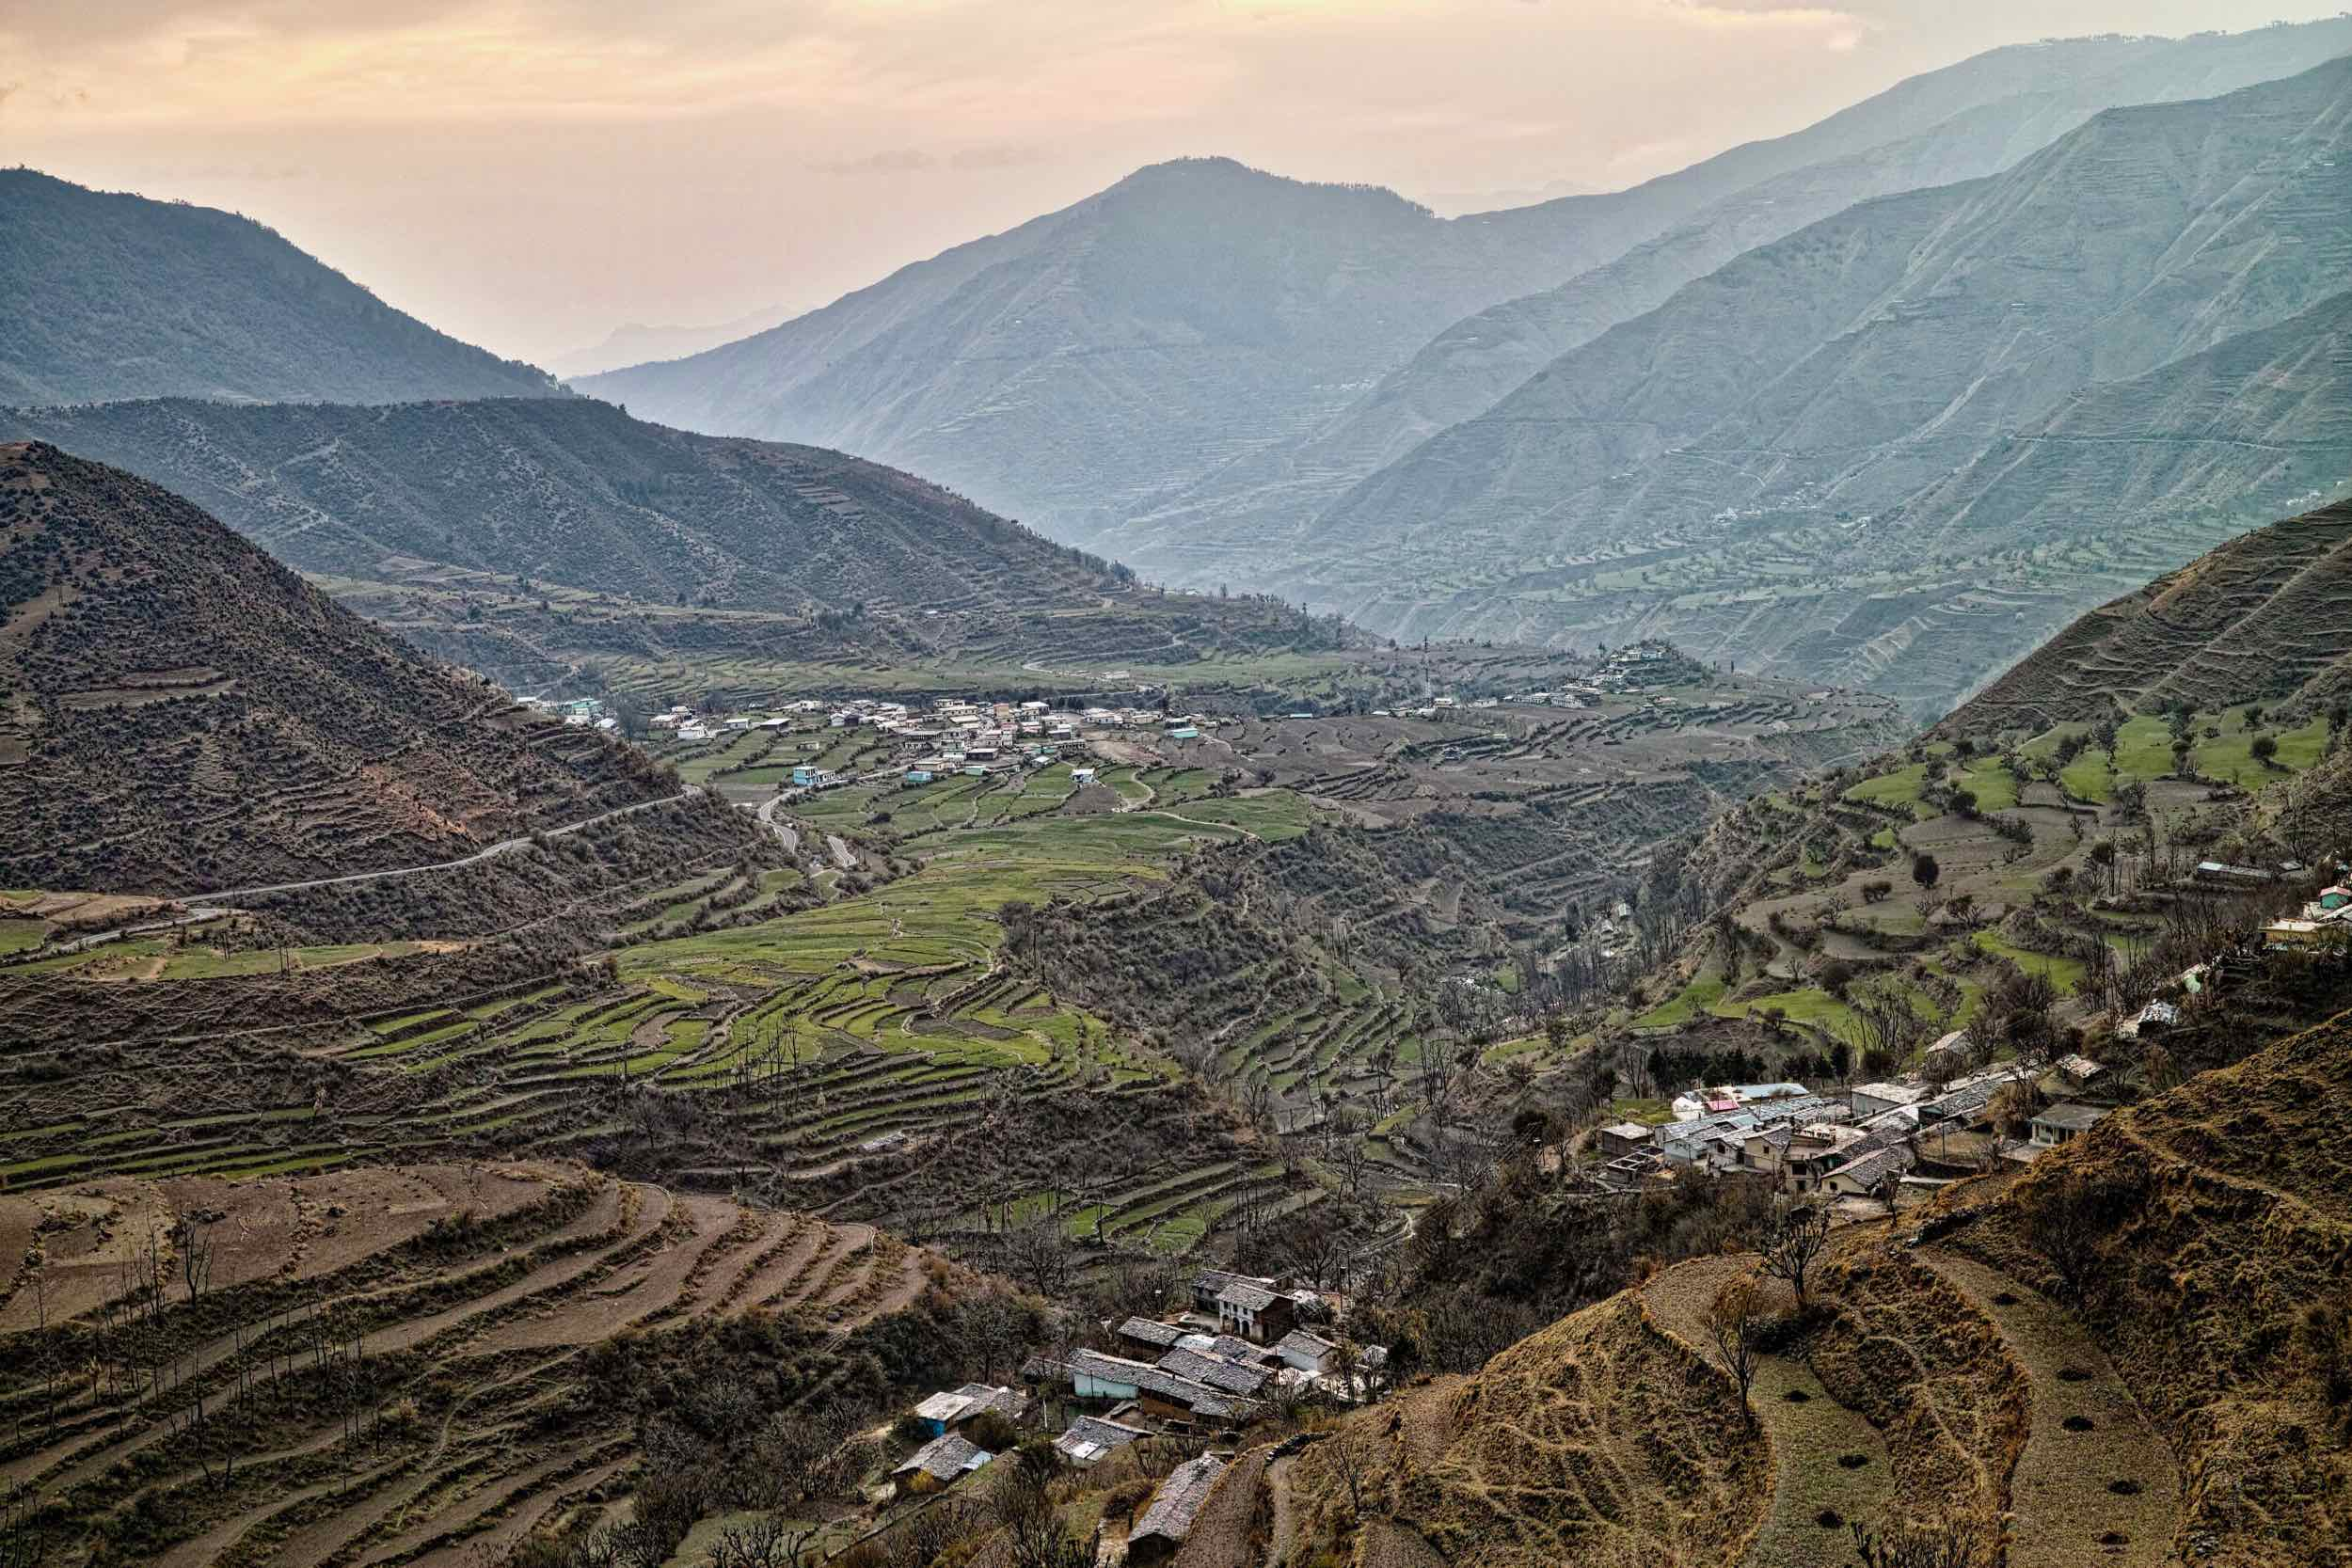 Sunset over Pantwari and terraced fields as seen from the road to Patharkhol